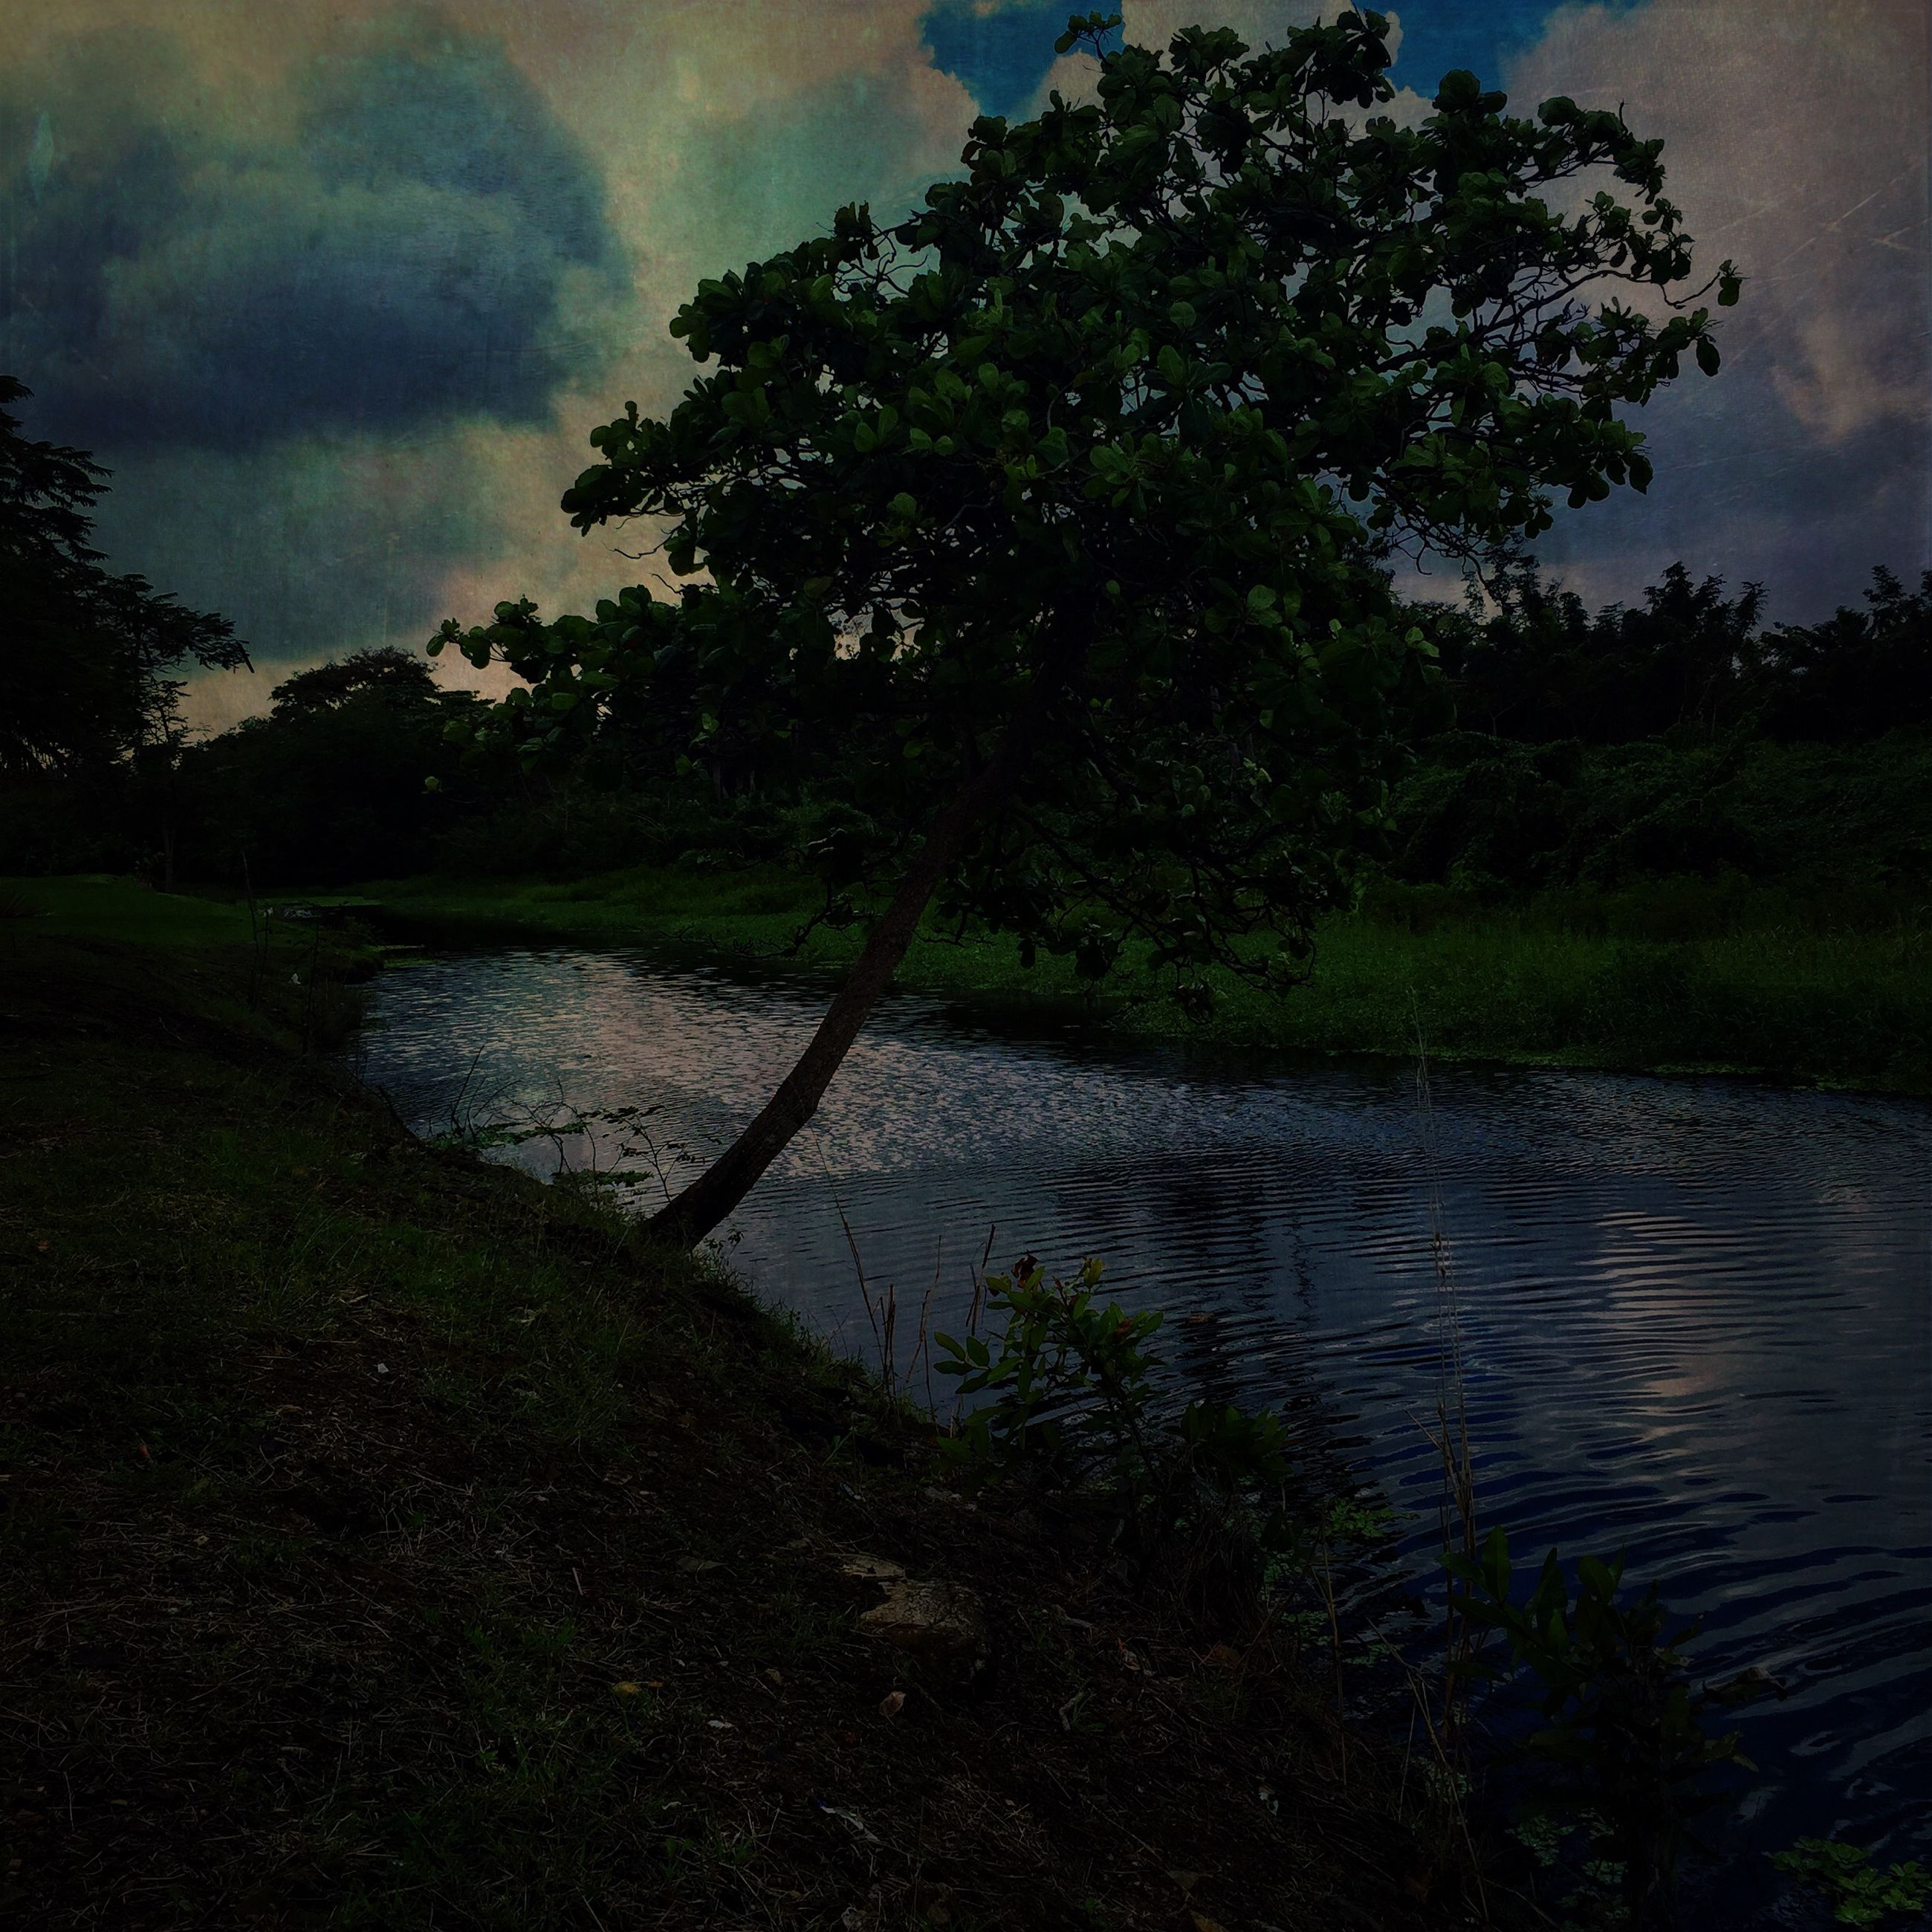 water, tree, tranquility, sky, tranquil scene, lake, nature, reflection, scenics, beauty in nature, cloud - sky, growth, branch, grass, river, silhouette, no people, cloud, outdoors, calm